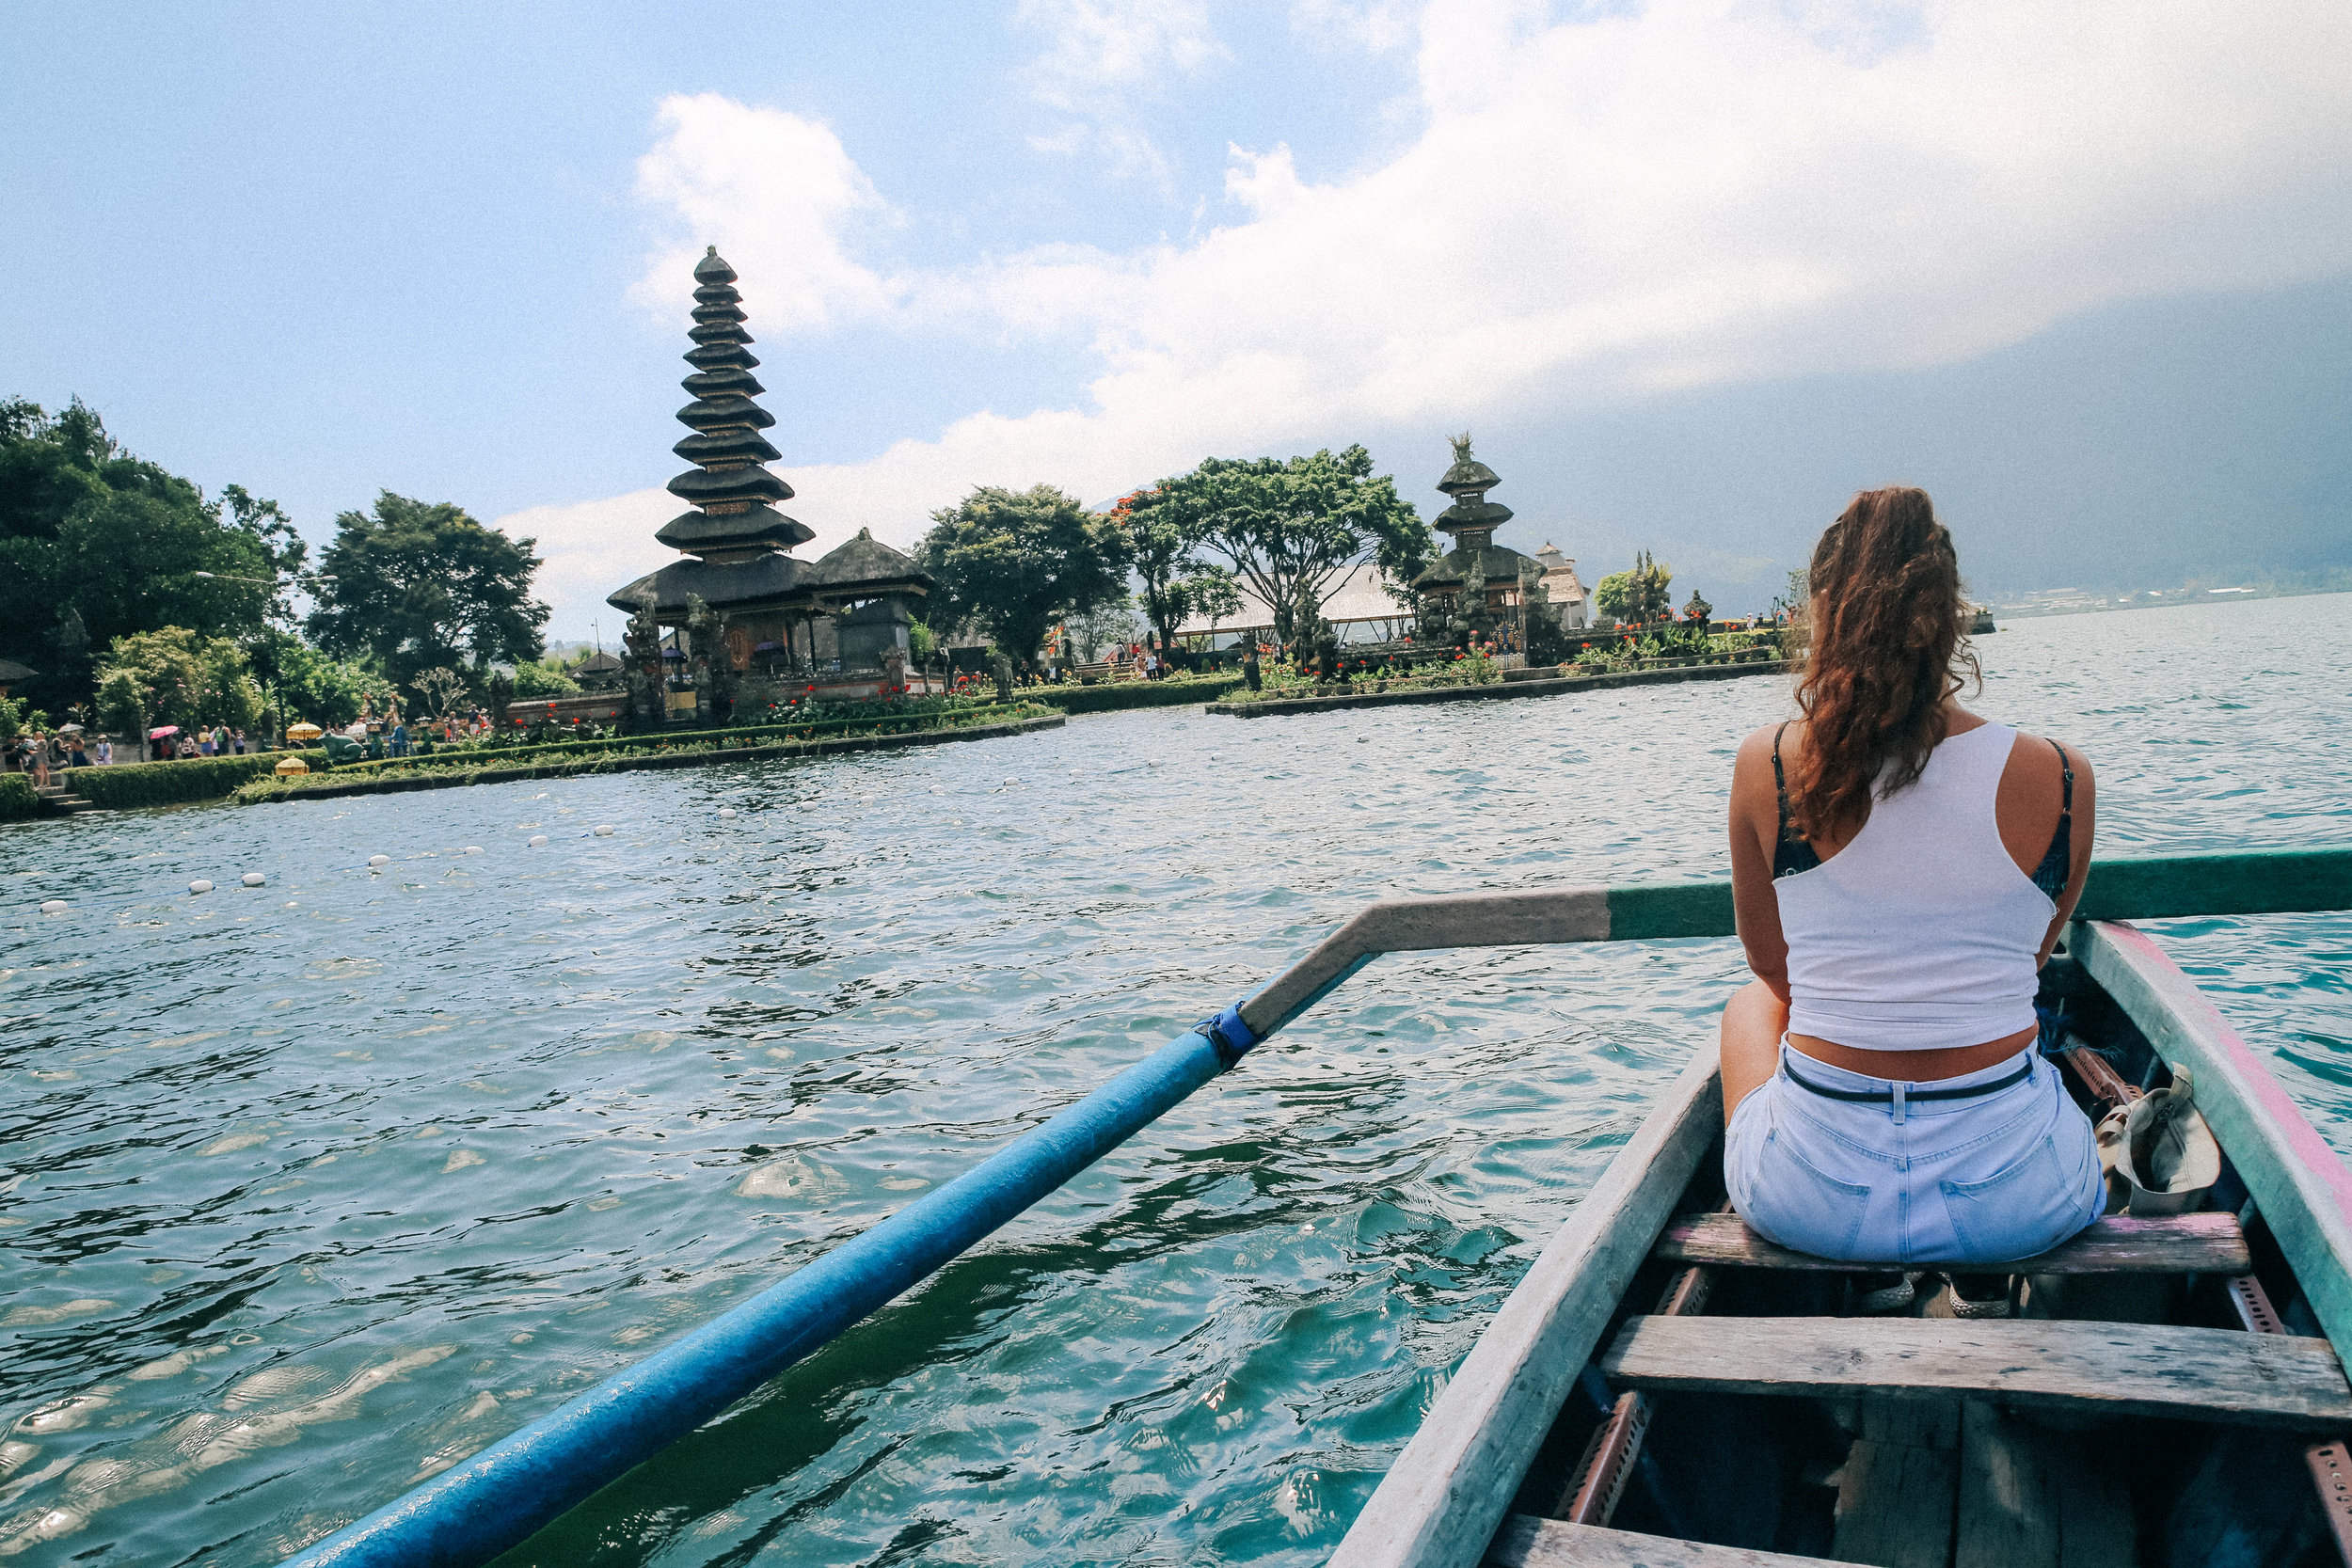 temple by the lake in bali